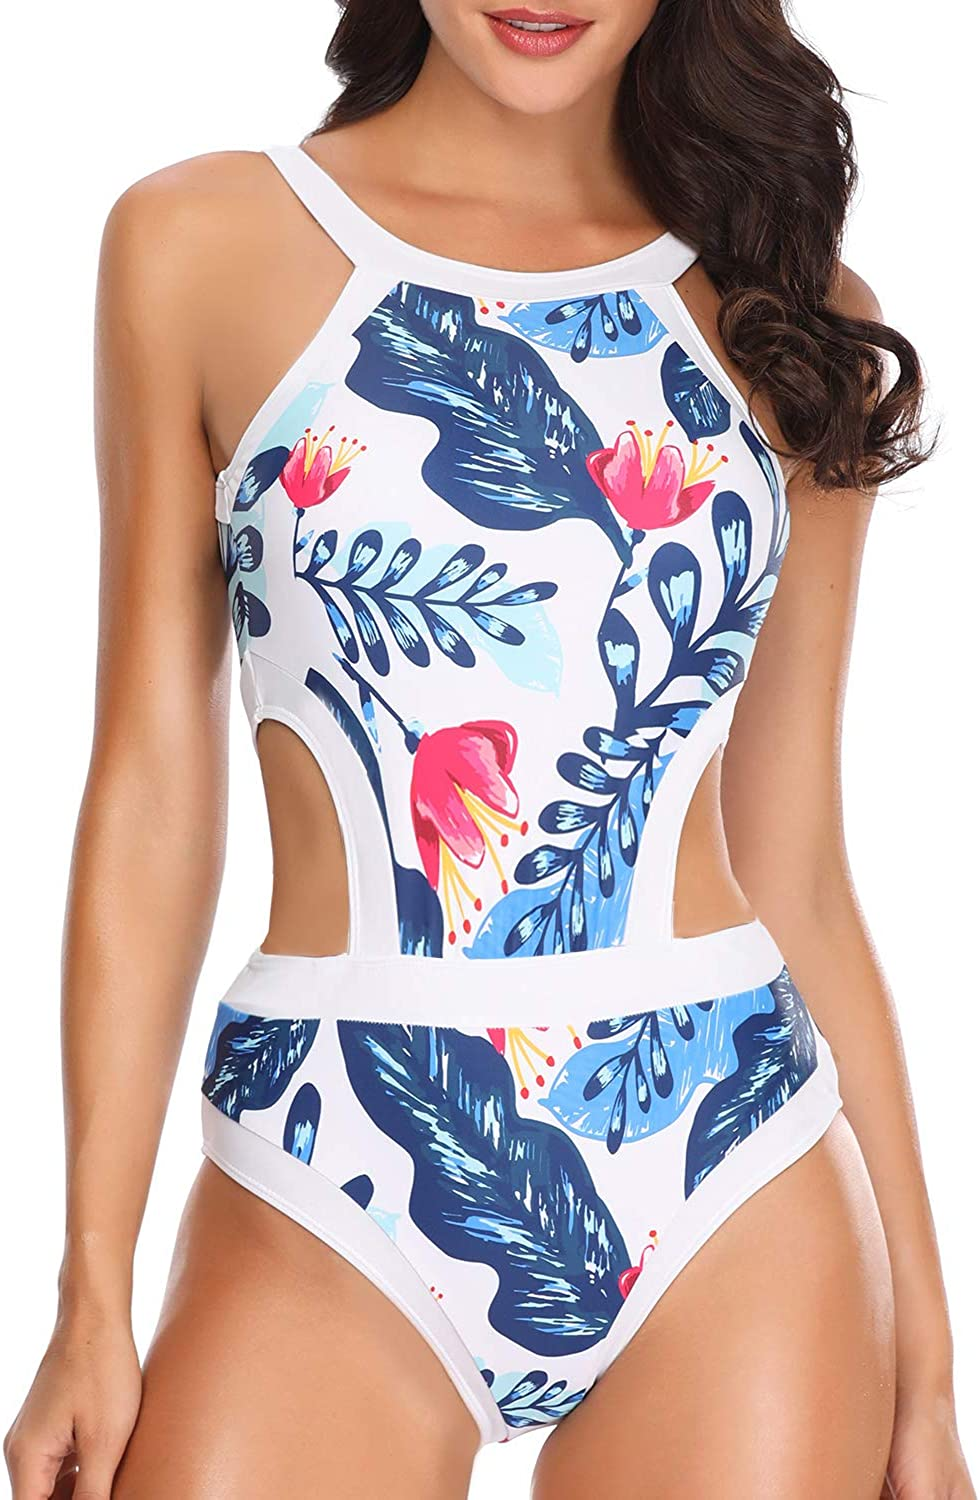 Holipick Women One Piece Swimsuit Cutout High Neck Bathing Suit Floral Printed Bathing Suits